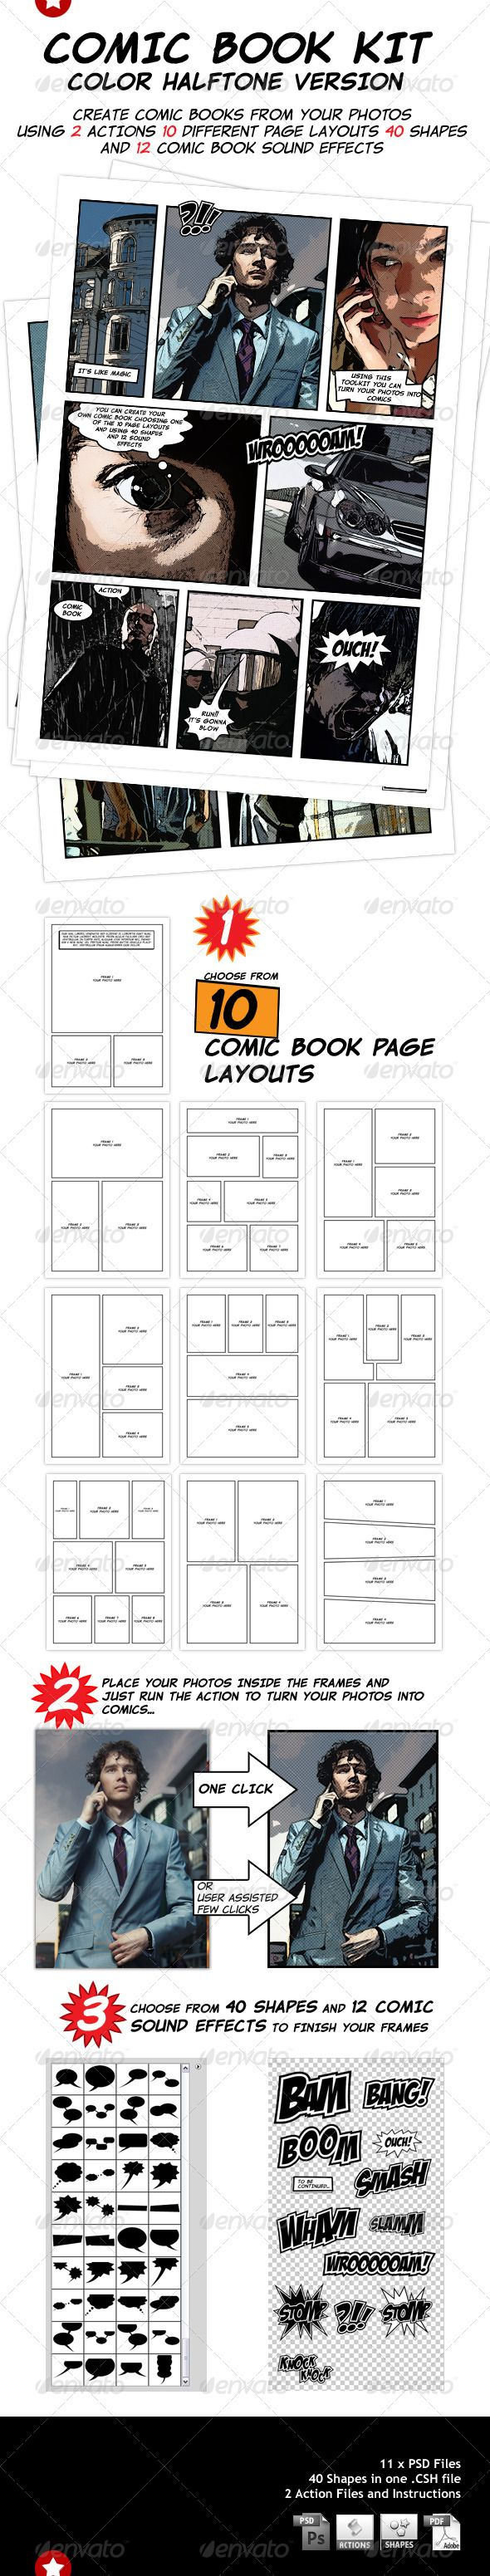 comic book page template psd - best 116 monster ladies gym ref images on pinterest other